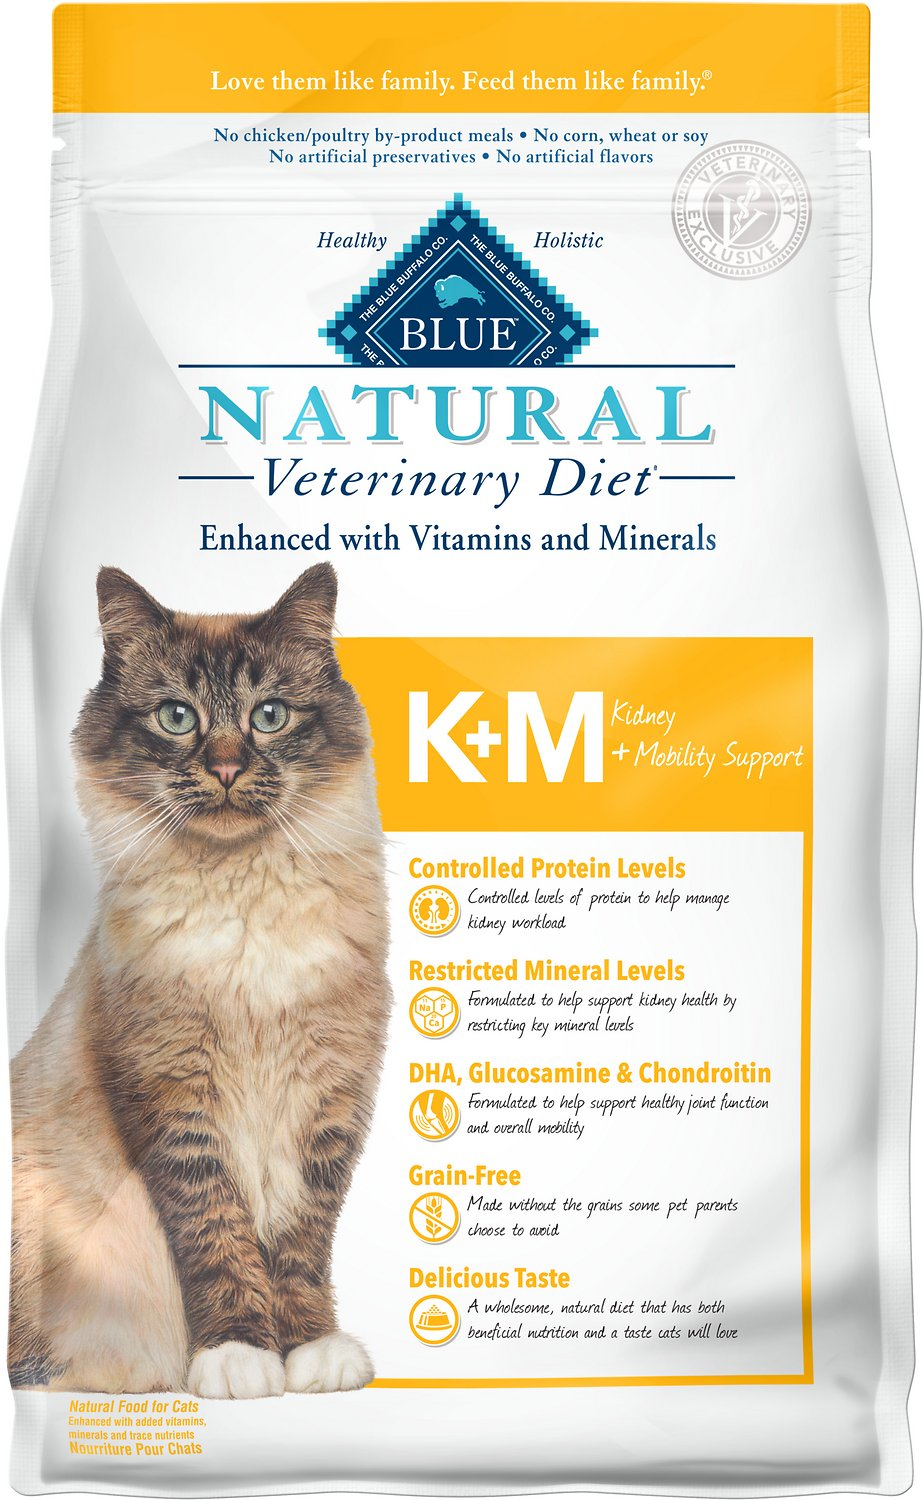 Blue Buffalo Natural Veterinary Diet K+M Kidney + Mobility Support Grain-Free Dry Cat Food, 7-lb